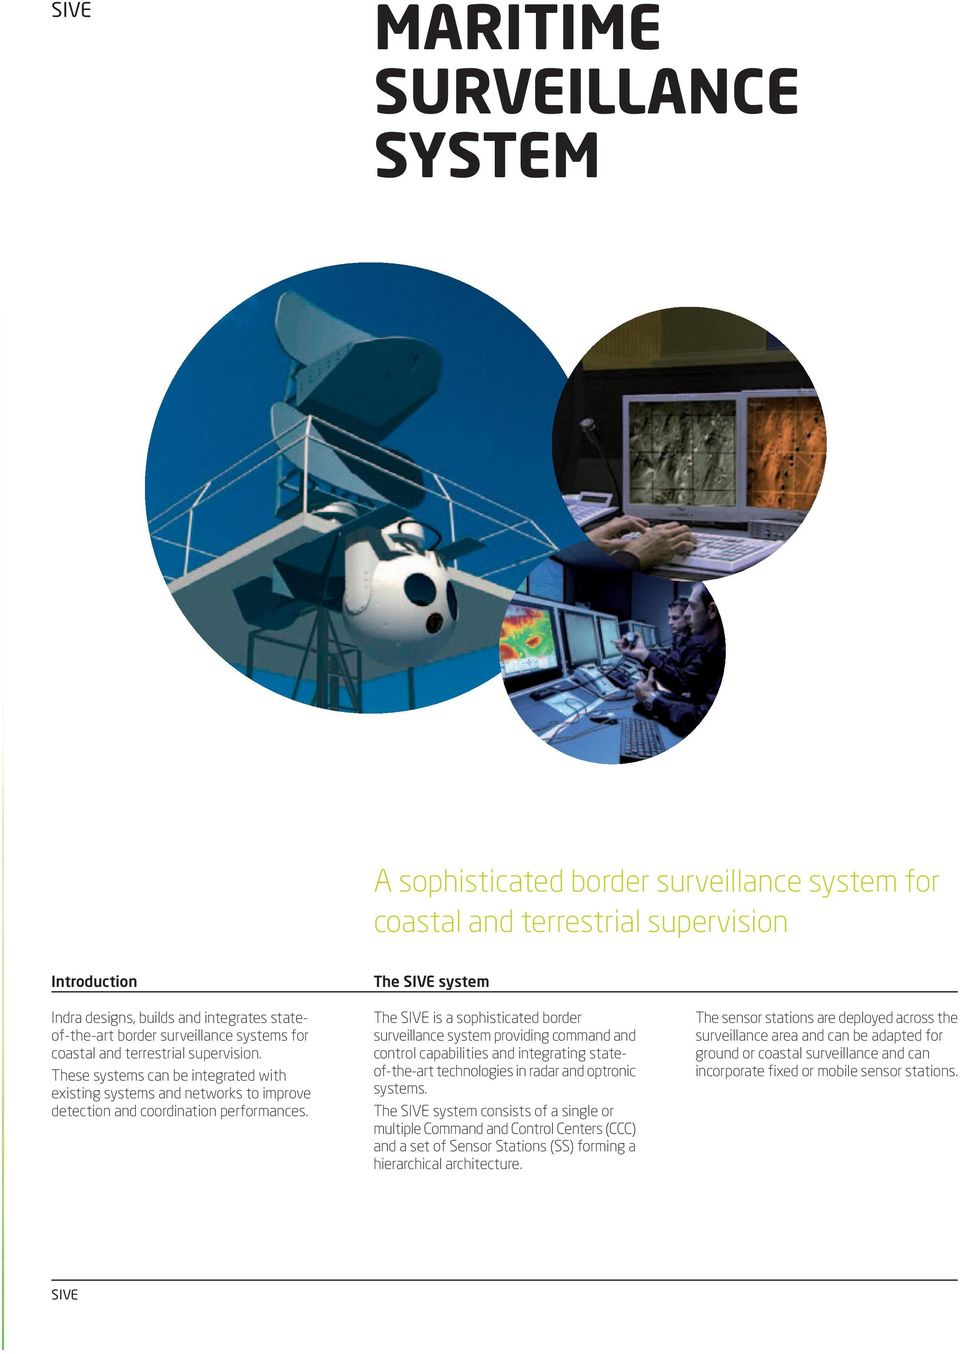 The SIVE system The SIVE is a sophisticated border surveillance system providing command and control capabilities and integrating stateof-the-art technologies in radar and optronic systems.